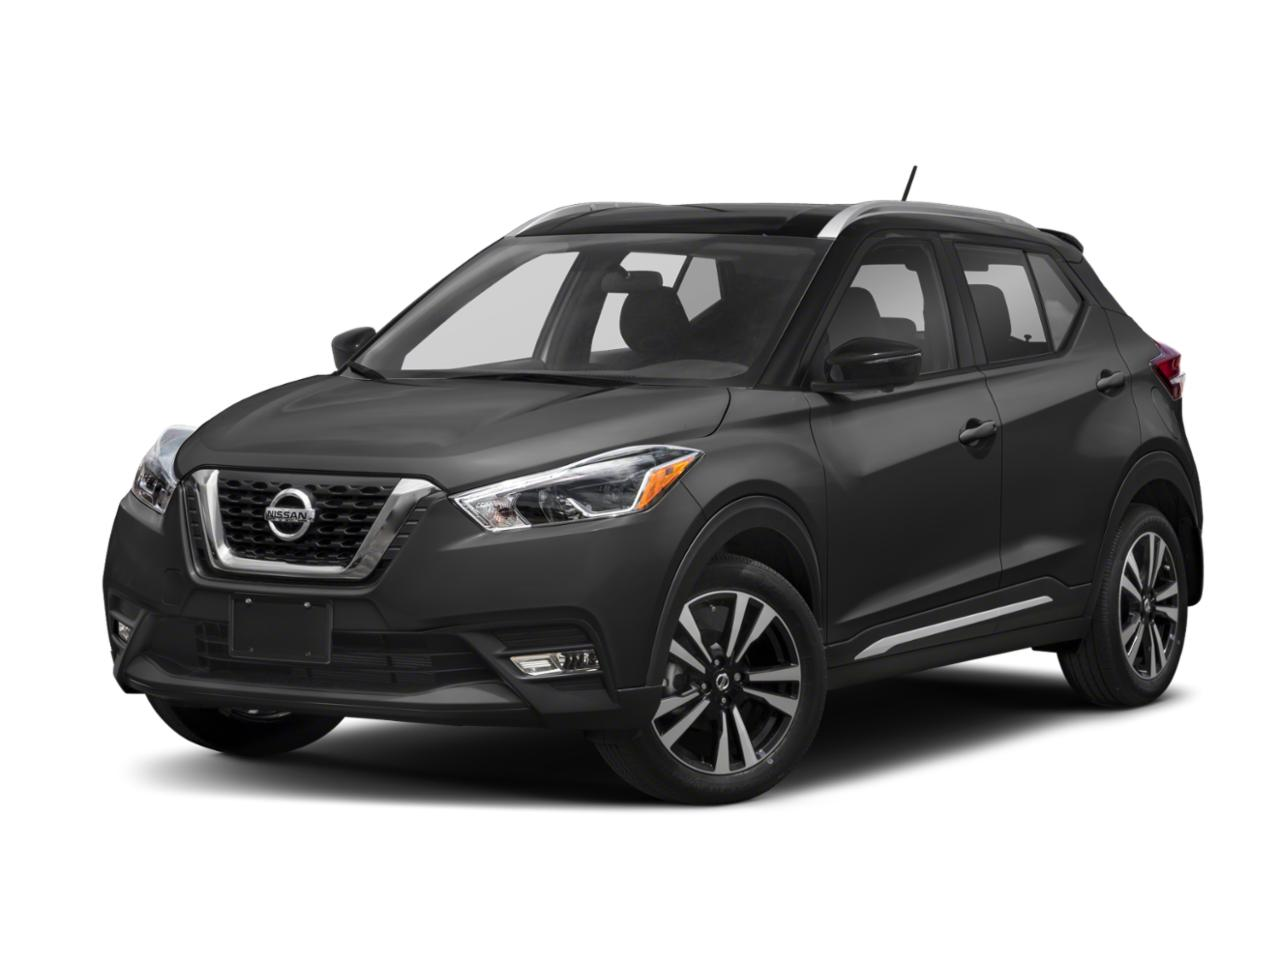 2020 Nissan Kicks Vehicle Photo in Oshkosh, WI 54904